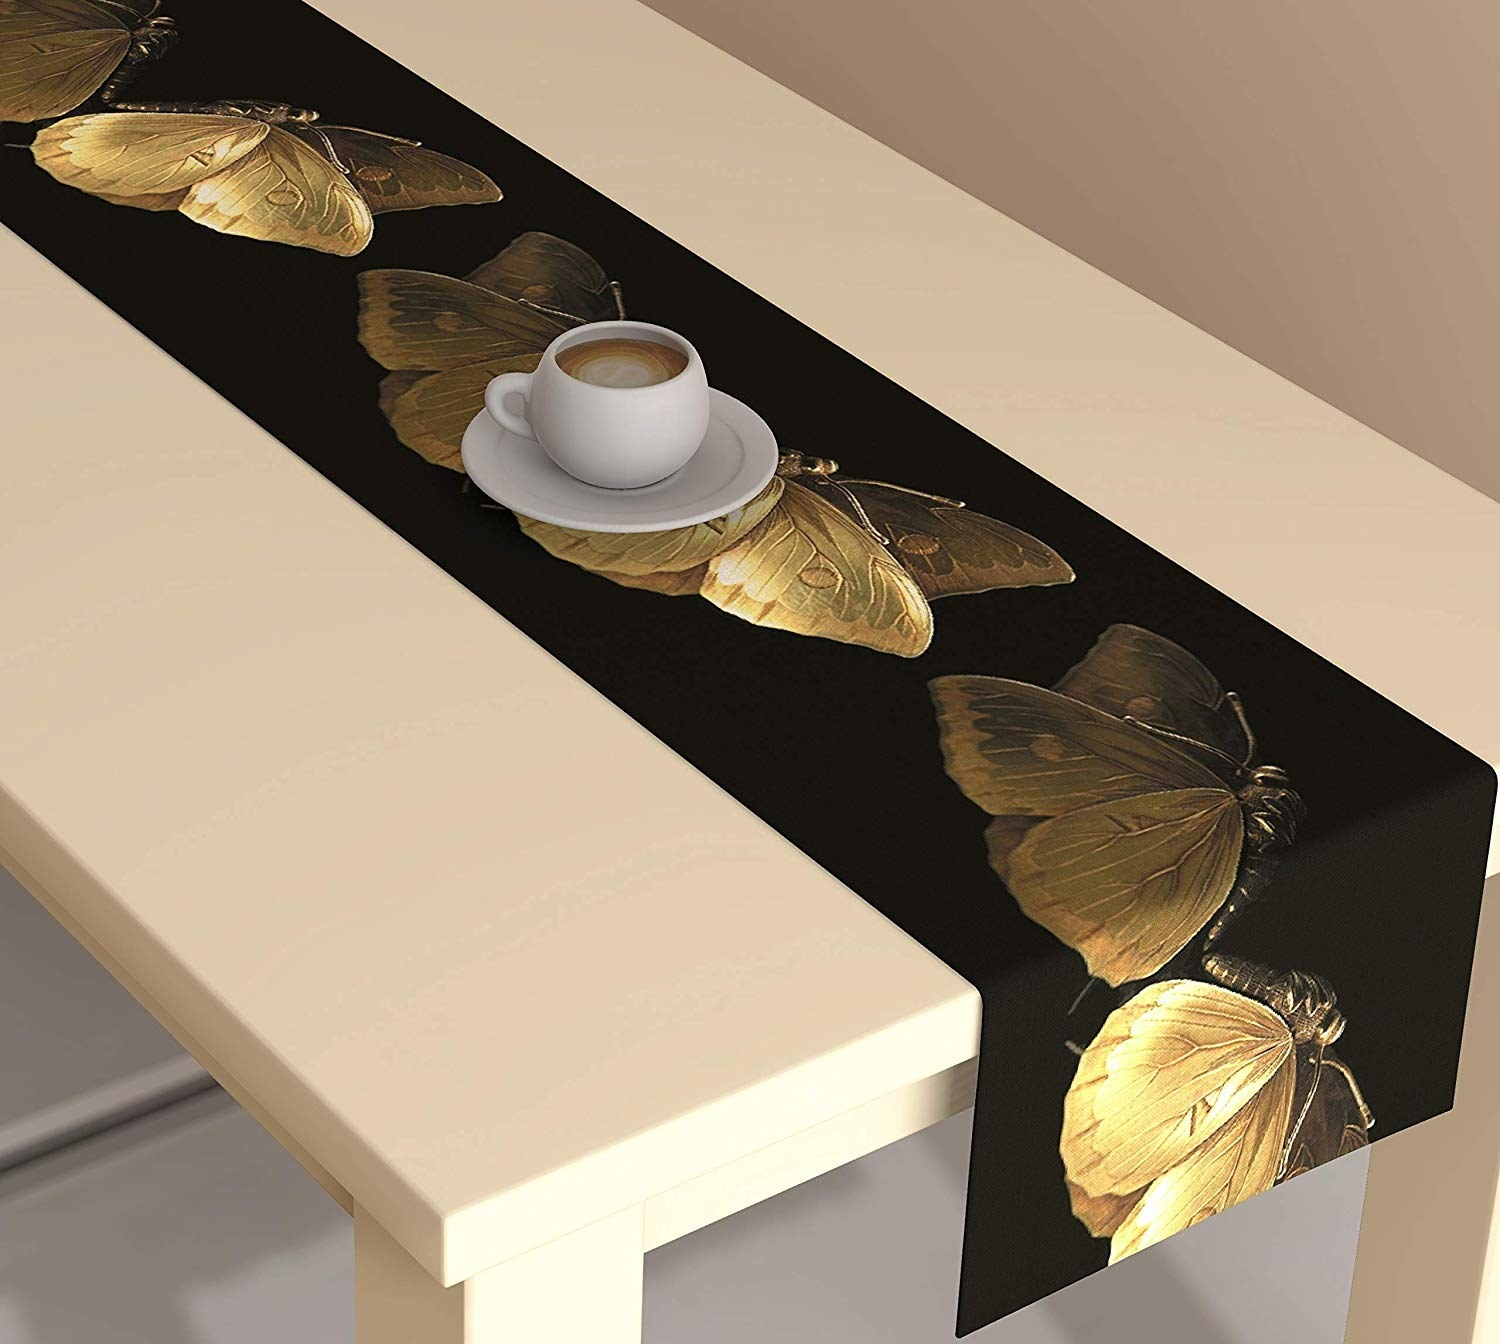 Table runner with golden butterflies on it placed on a table.